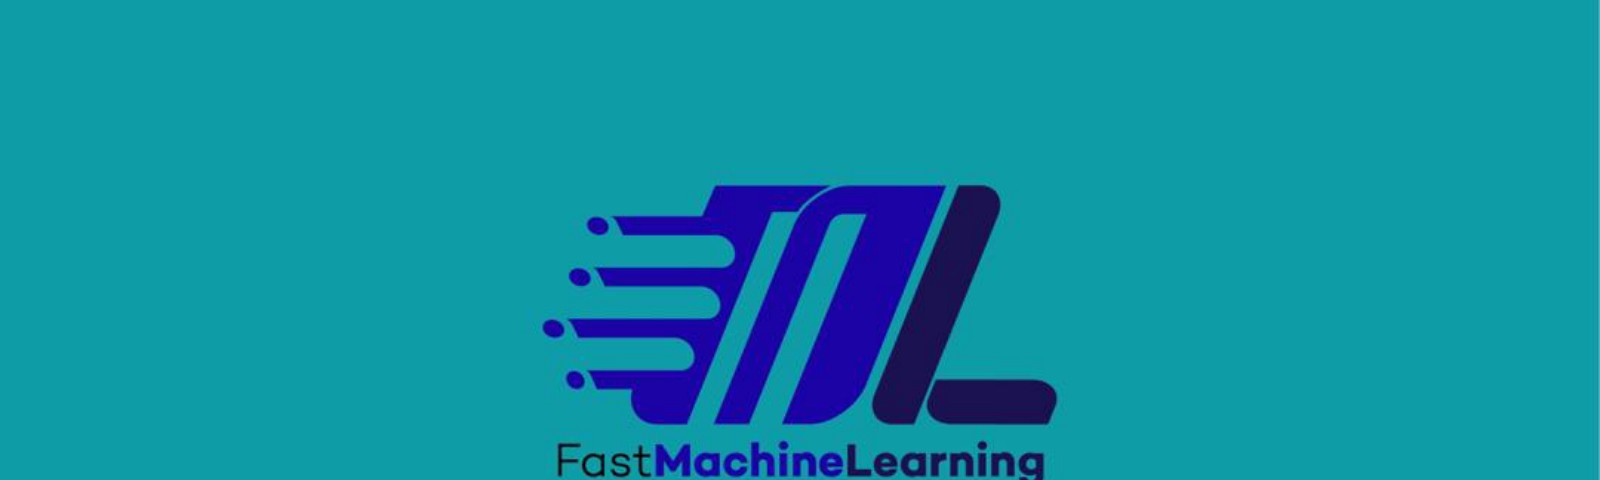 FastML logo portraying the concept of speed as associated with the FastML python Package